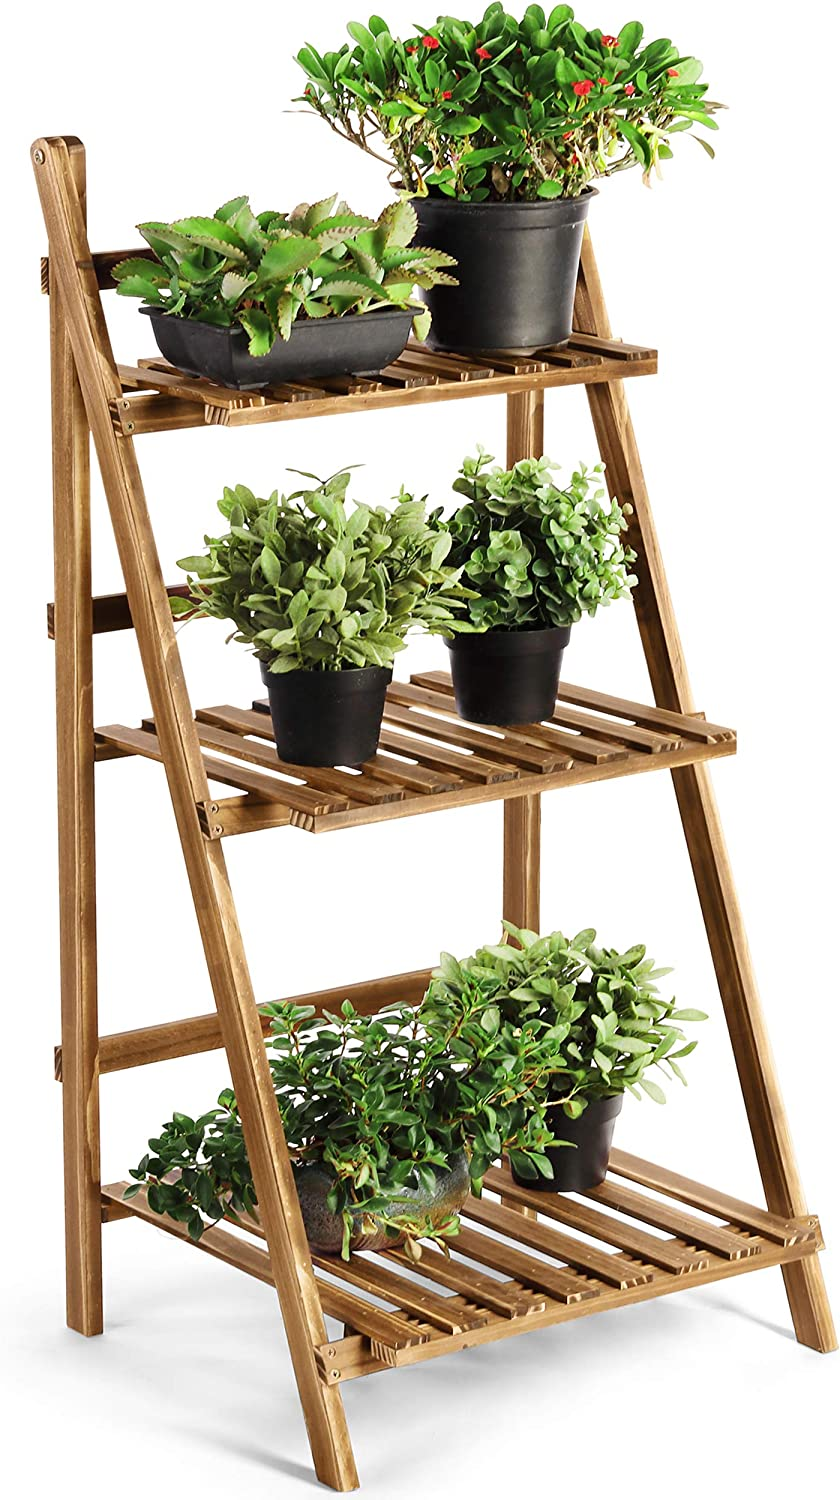 HYNAWIN Wood Plant Stand, 3 Tiers Plant Rack, Ladder Flower Stand Plant Display Shelf, Pot Display Storage Rack for Indoor Outdoor Home Patio Lawn Garden Balcony Organizer Planter